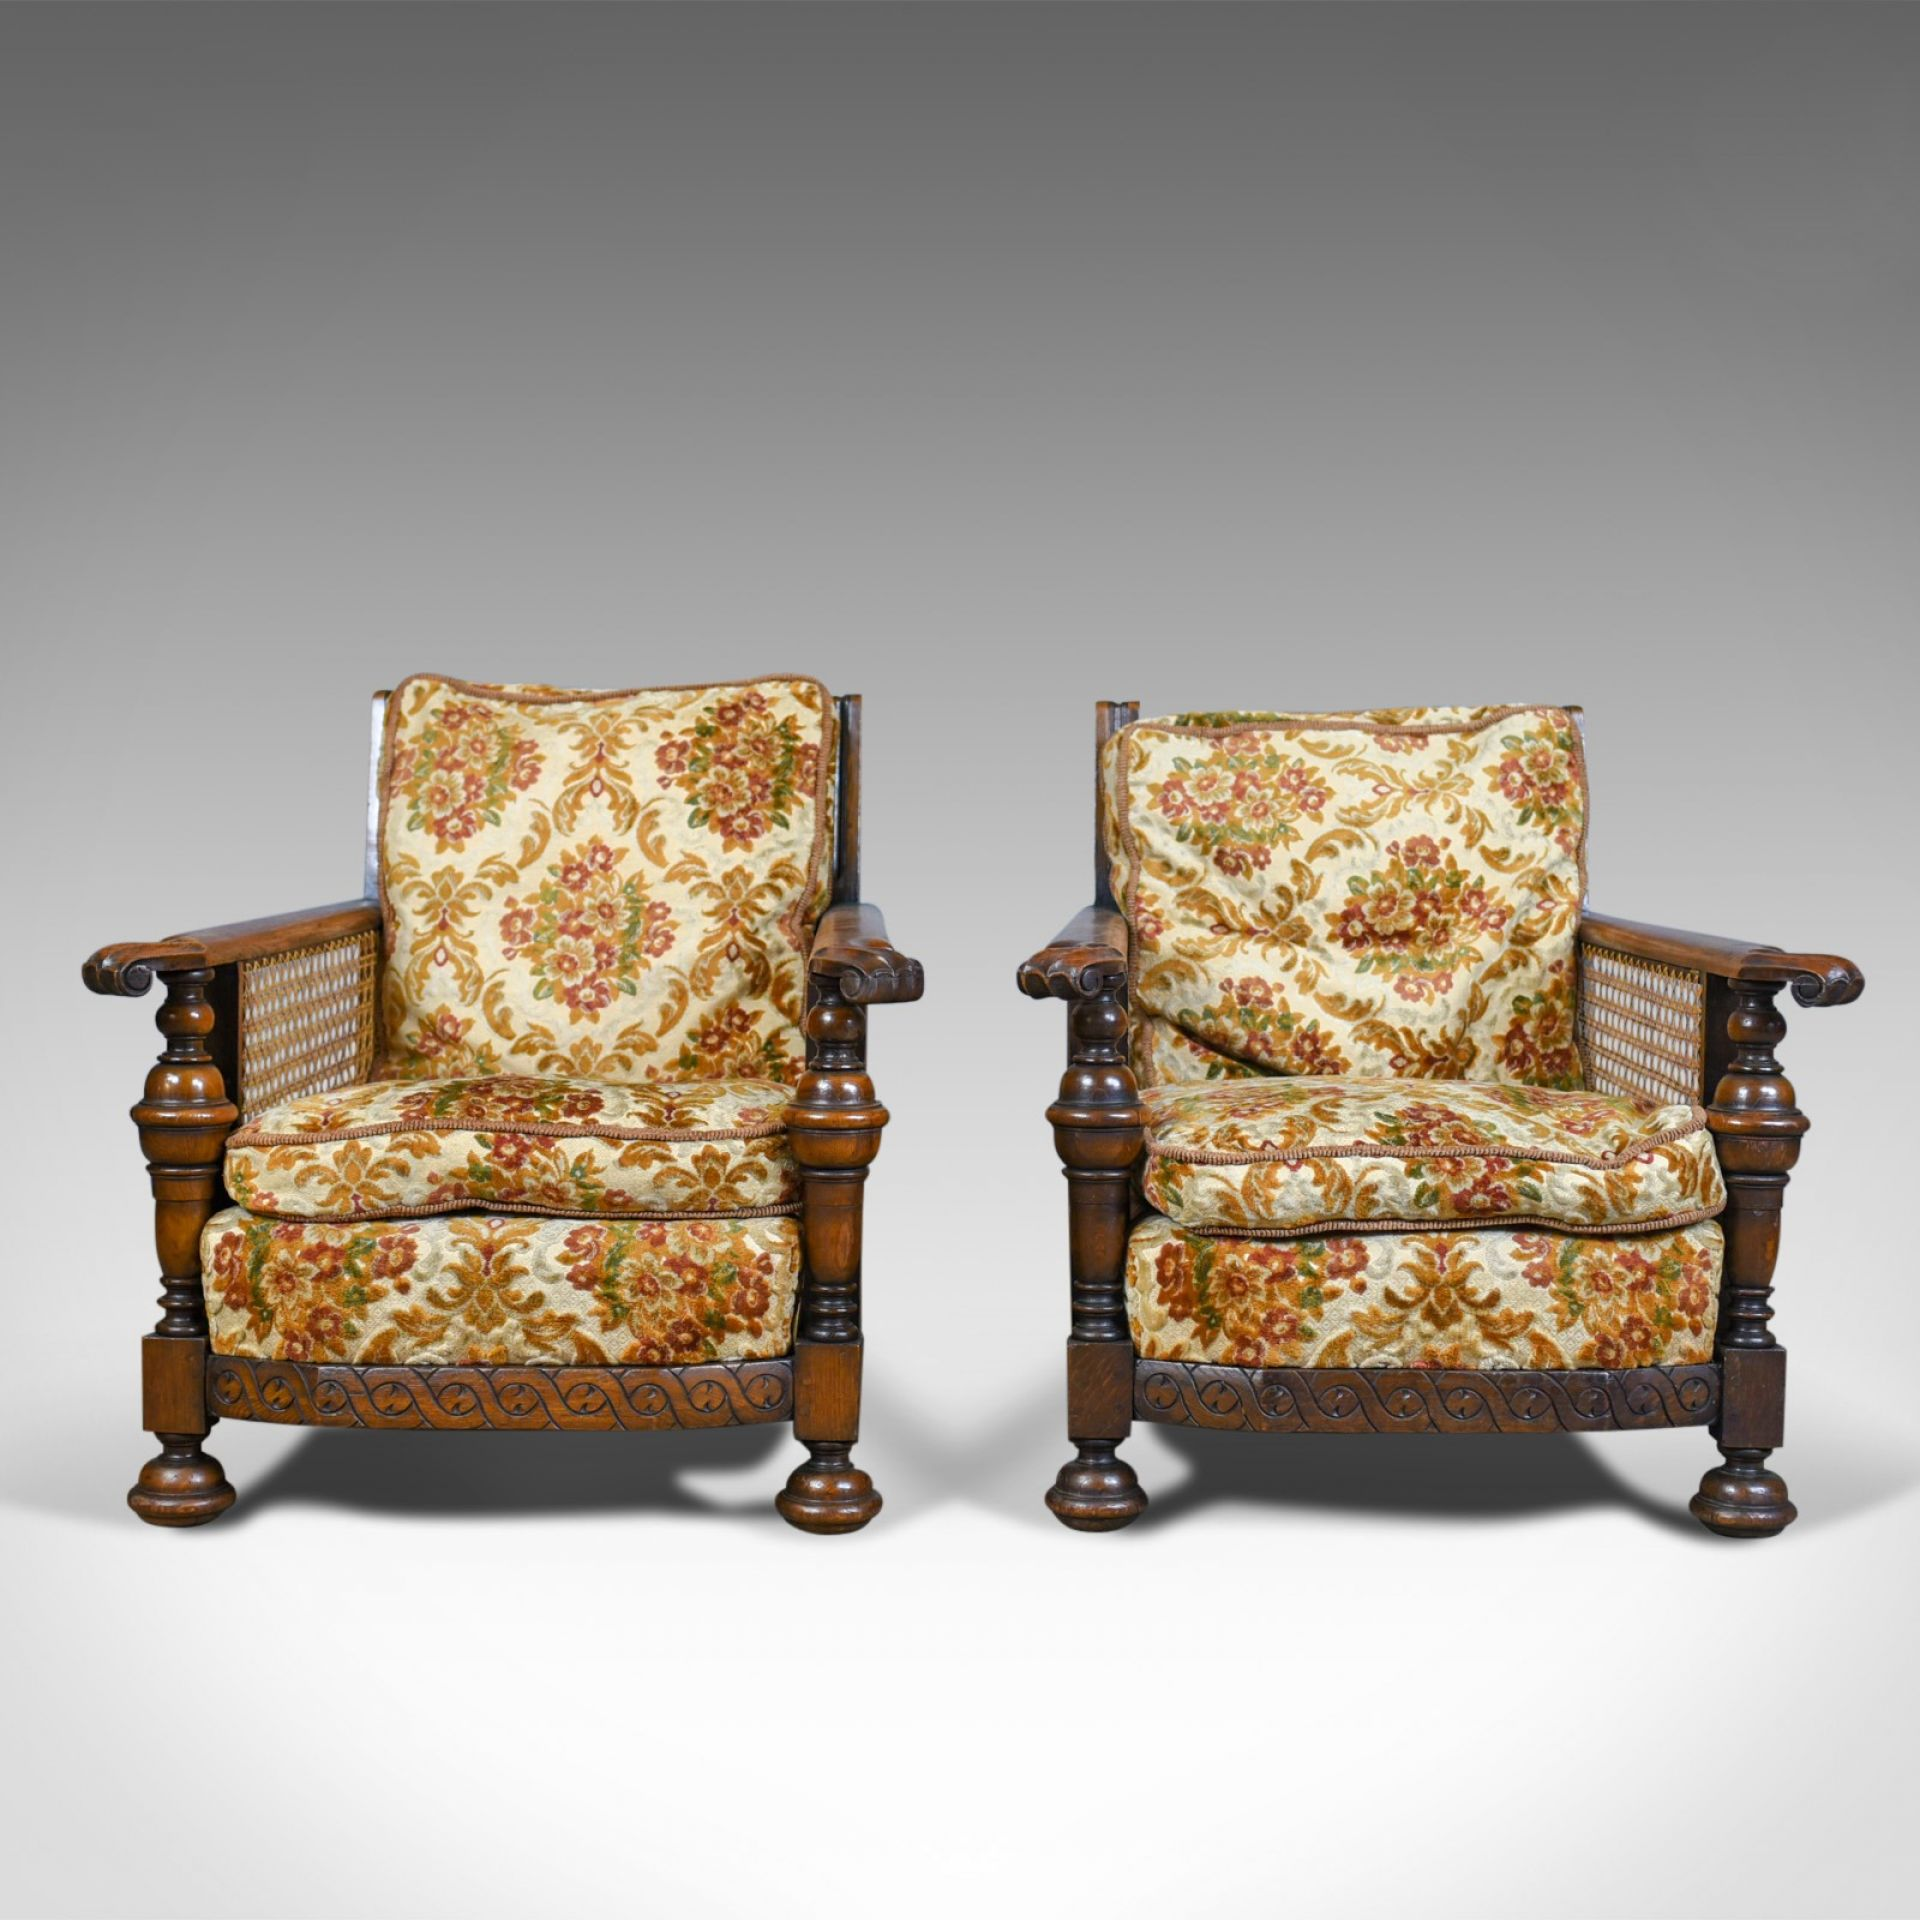 Pair of Antique, Conservatory Chairs, Oak, English, Bergere Armchairs Circa 1910